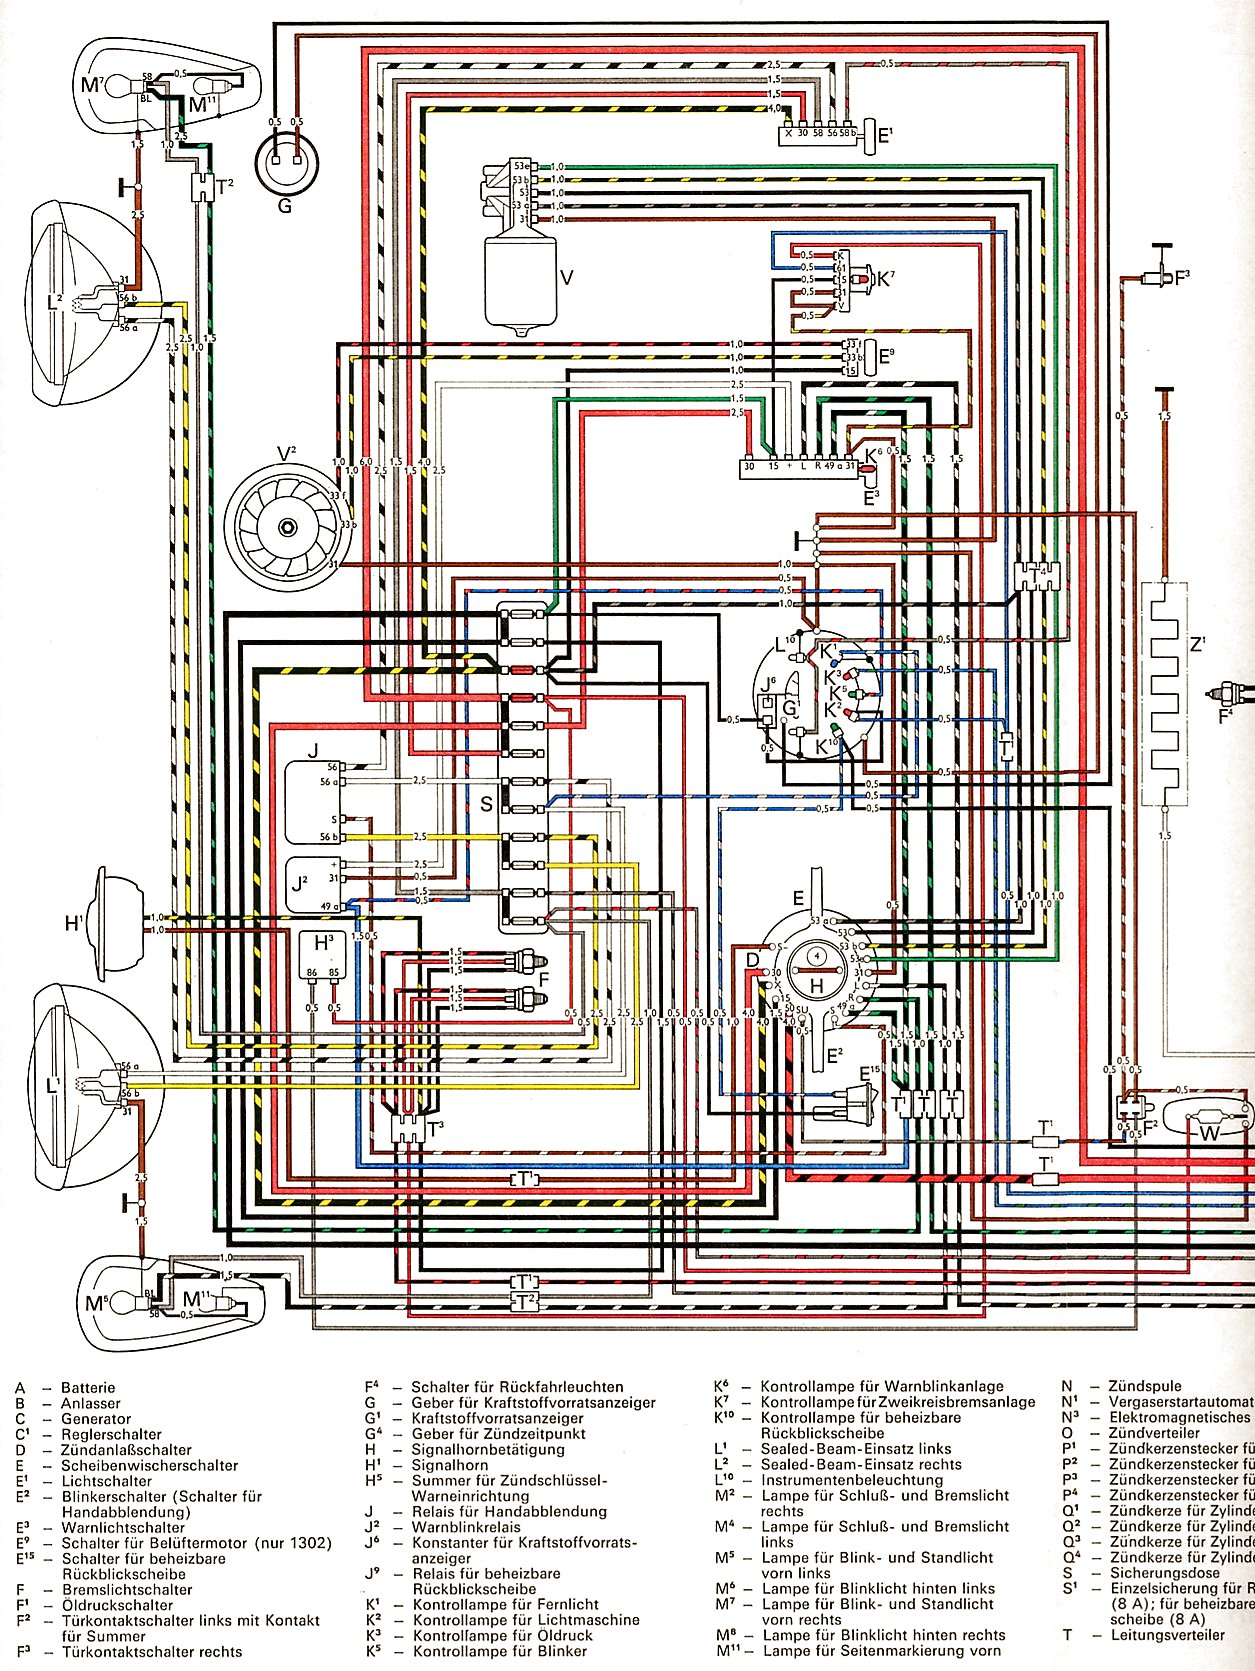 1300_and_1302_USA_from_August_1971 1 vw bug wiring 1969 vw starter wiring diagram \u2022 wiring diagrams j 1971 vw bus wiring diagram at bakdesigns.co